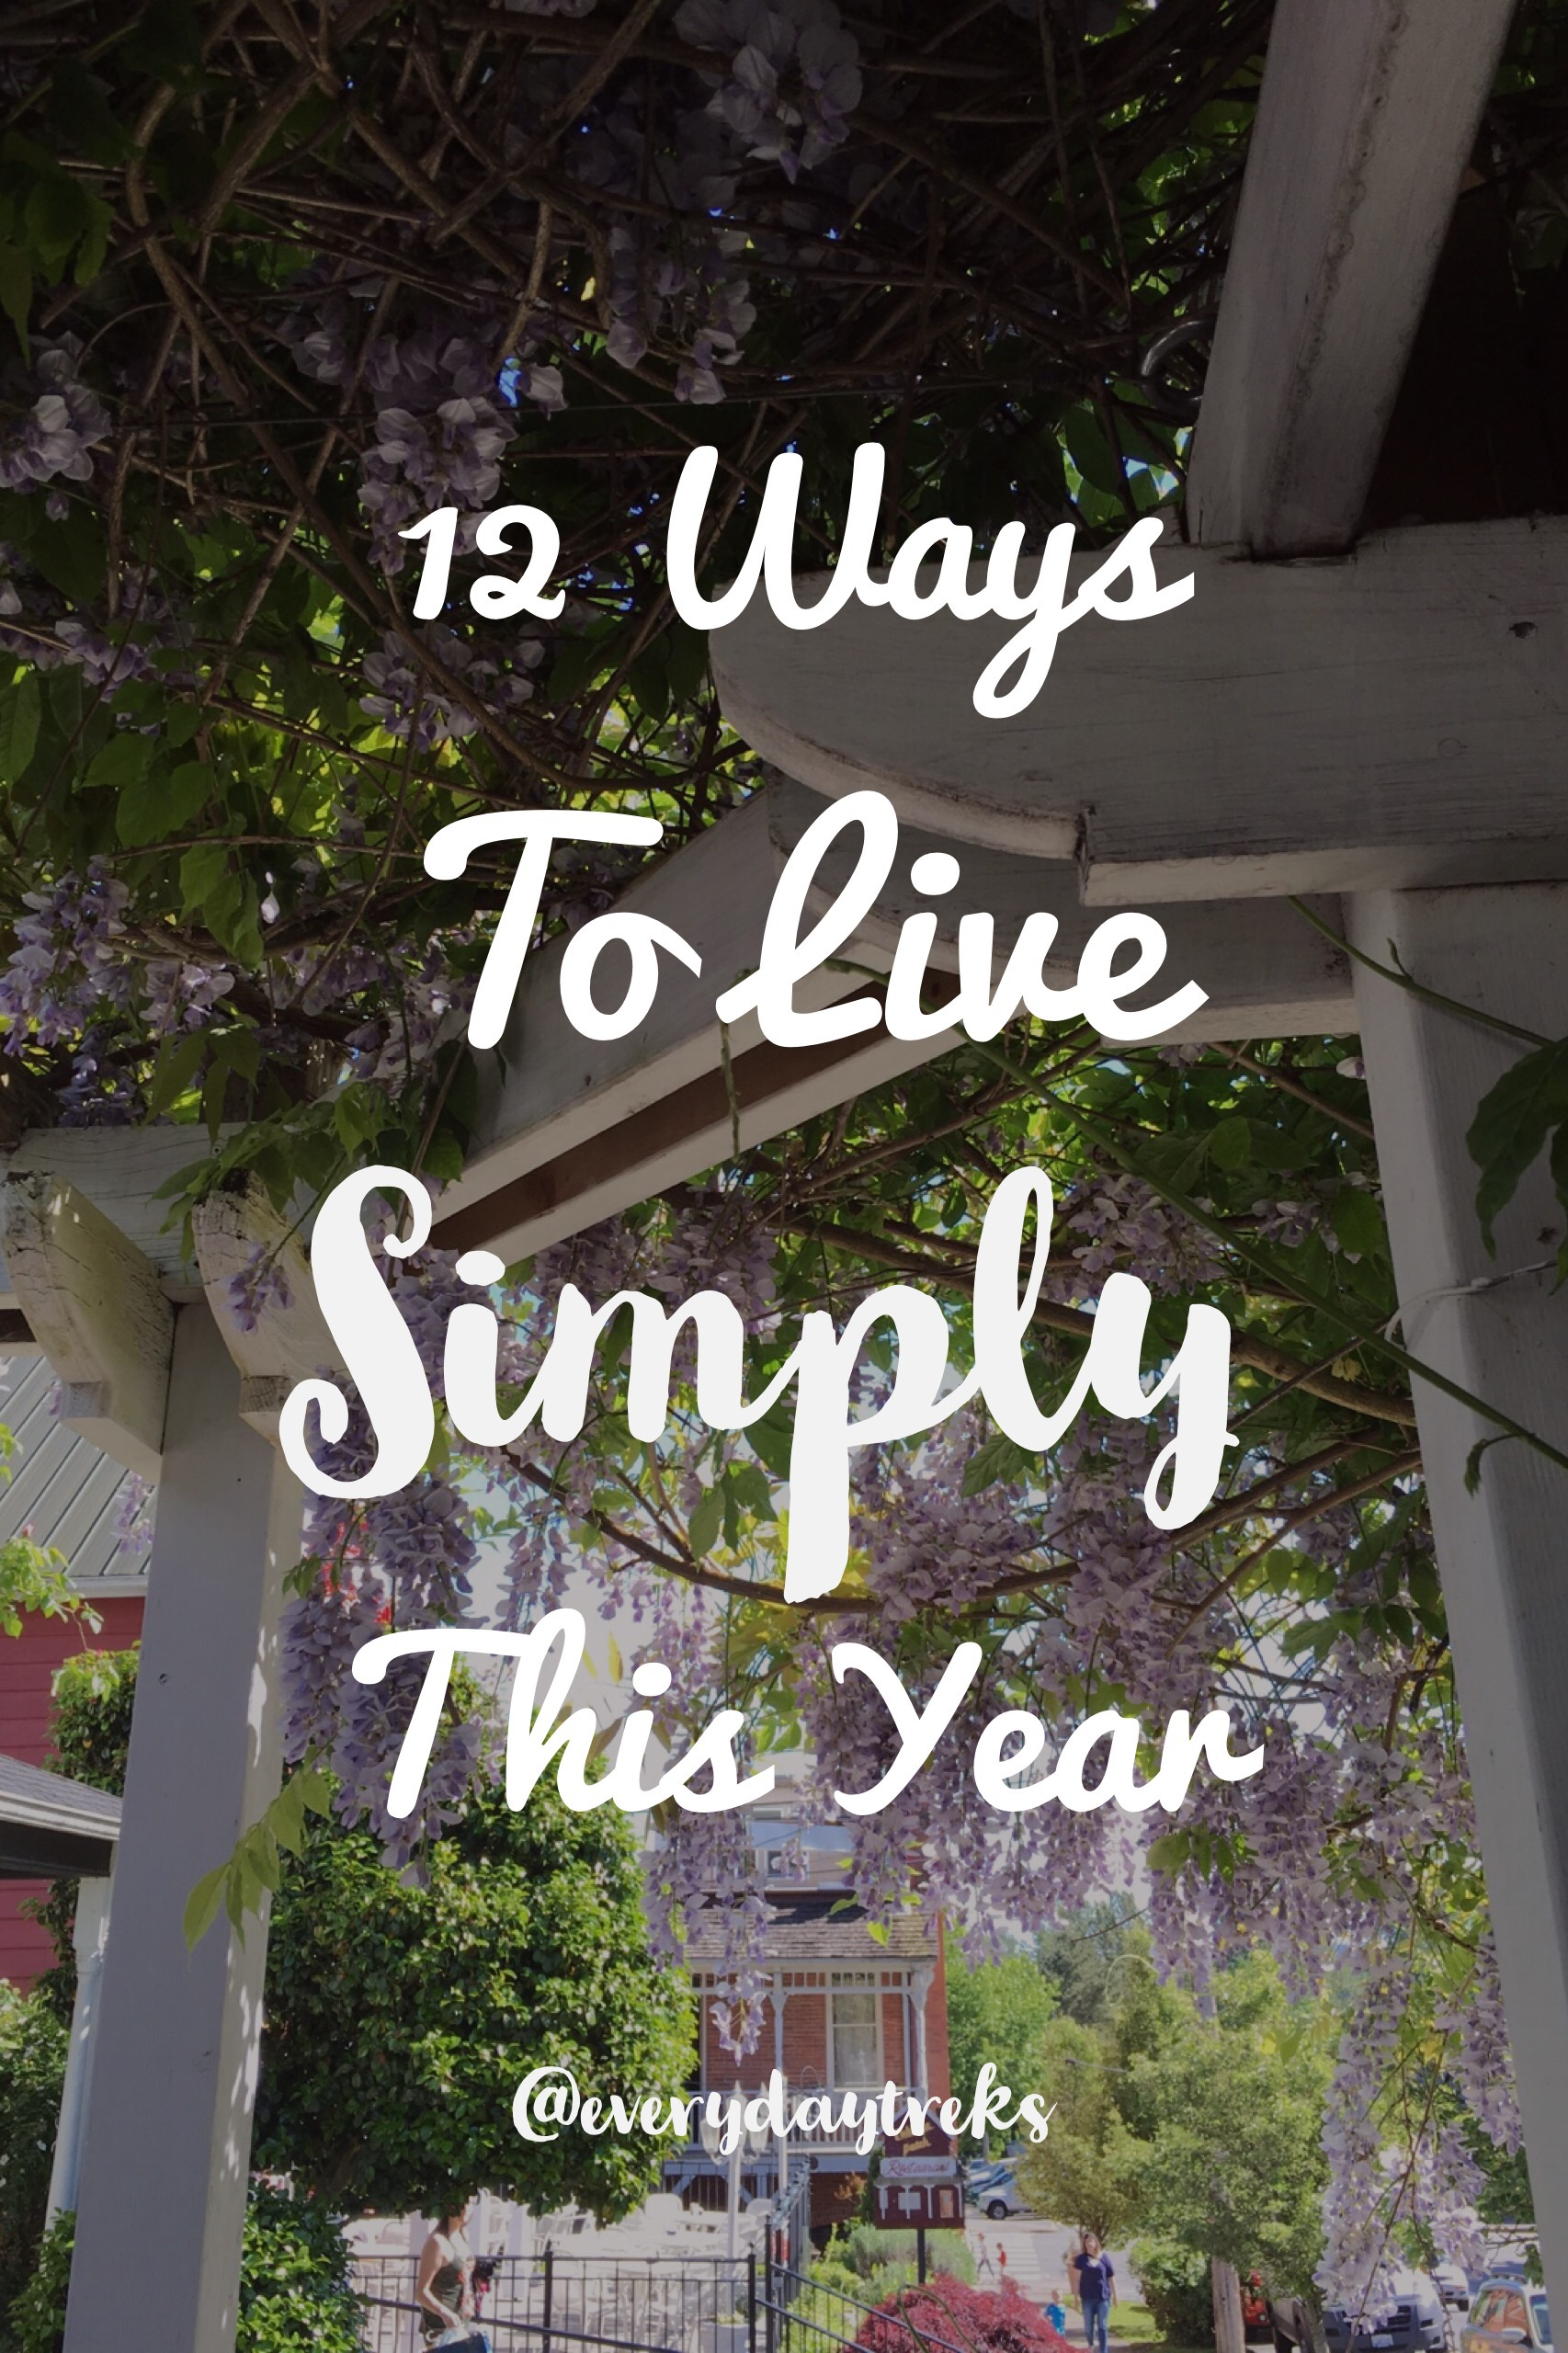 12 Ways to live Simply this year. My goal for the year is to live more simply. To cook meals from home with fresh local ingredients, to spend more time with friends, to visit the new coffee shops popping up, and to search for my favorite cup of